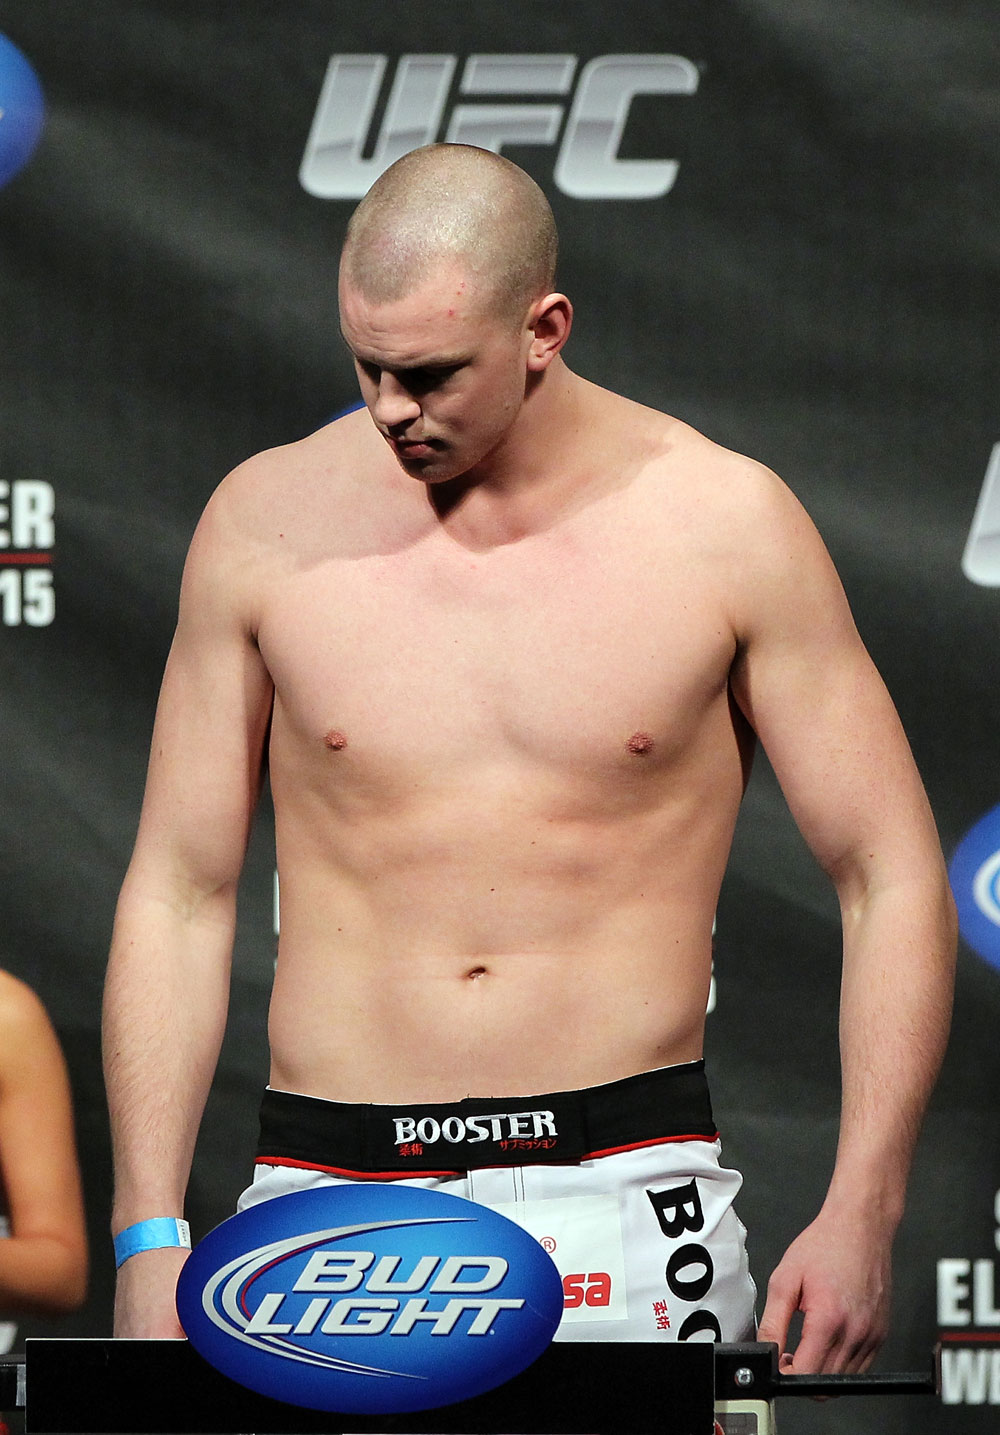 OMAHA, NE - FEBRUARY 14:  Stefan Struve weighs in during the UFC on FUEL TV weigh in event at Omaha Civic Auditorium on February 14, 2012 in Omaha, Nebraska.  (Photo by Josh Hedges/Zuffa LLC/Zuffa LLC via Getty Images) *** Local Caption *** Stefan Struve